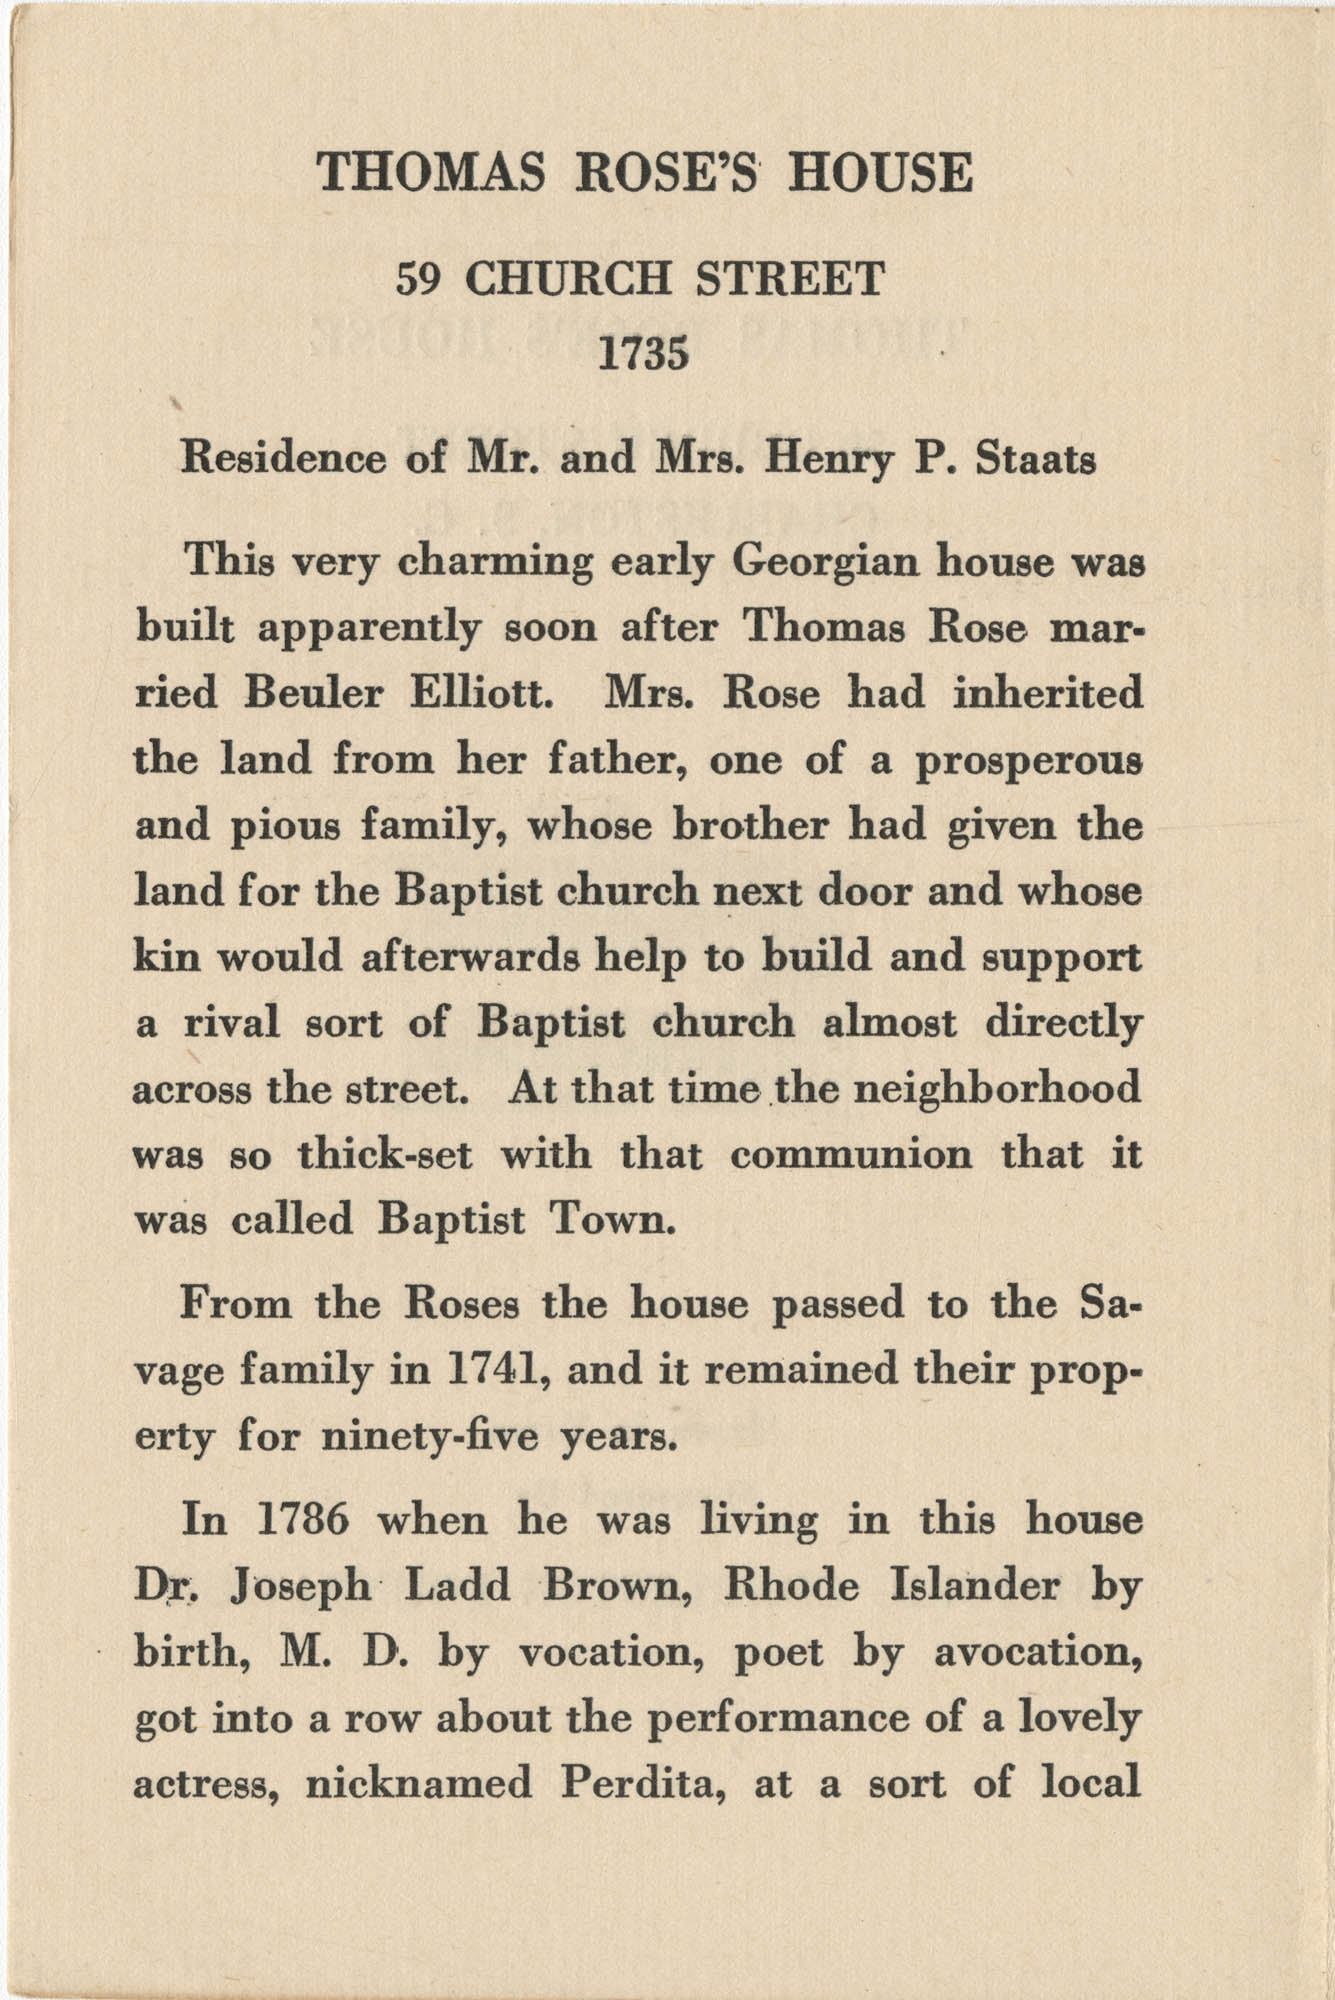 Thomas Rose's House Page 1